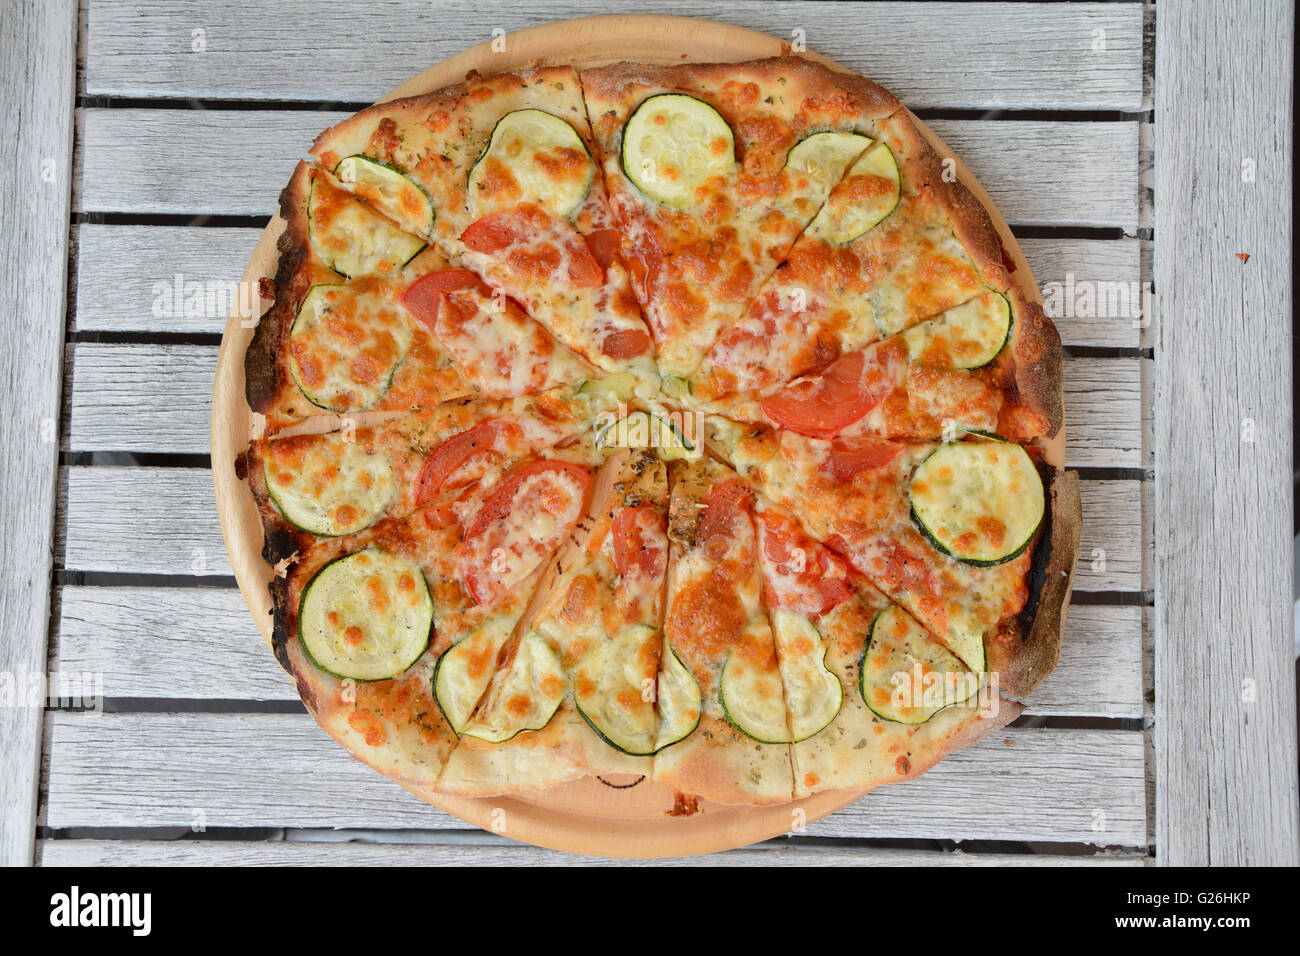 Home made pizza on wooden table - Stock Image